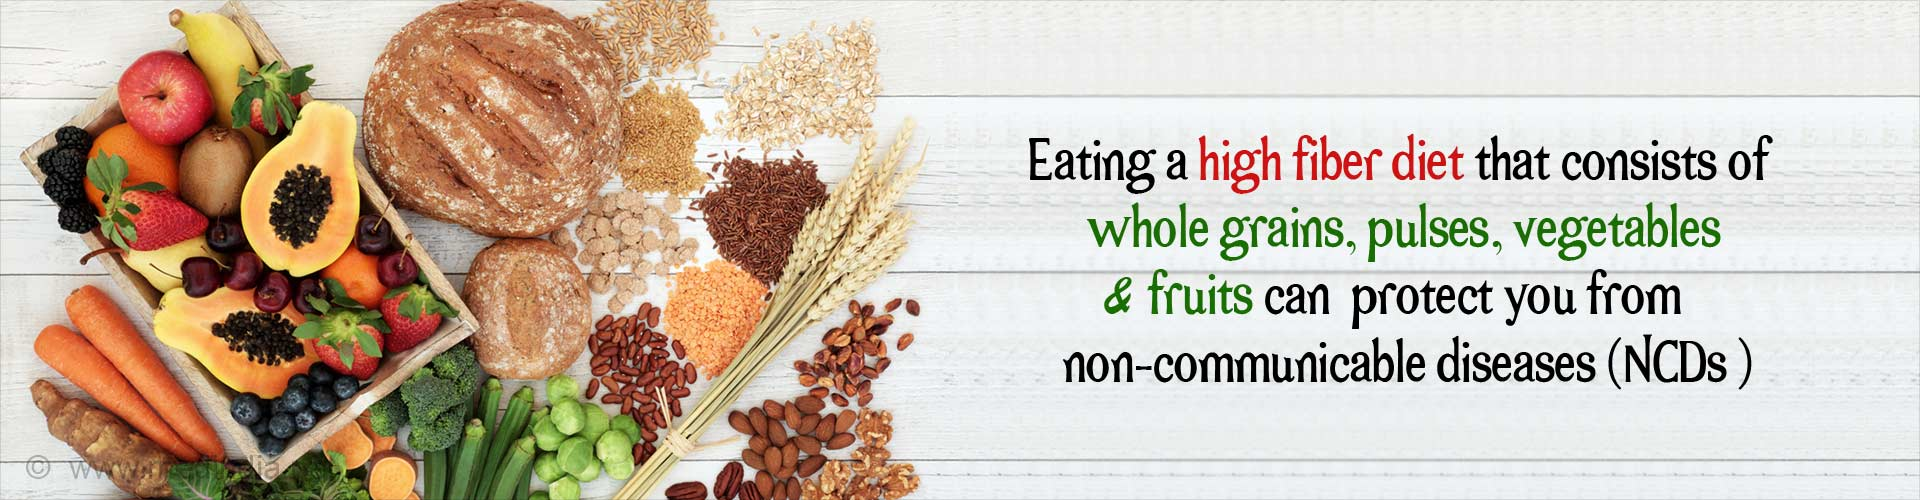 Eating a high fiber diet that consists of whole grains, pulses, vegetables and fruits can protect you from non-communicable diseases (NCDs).